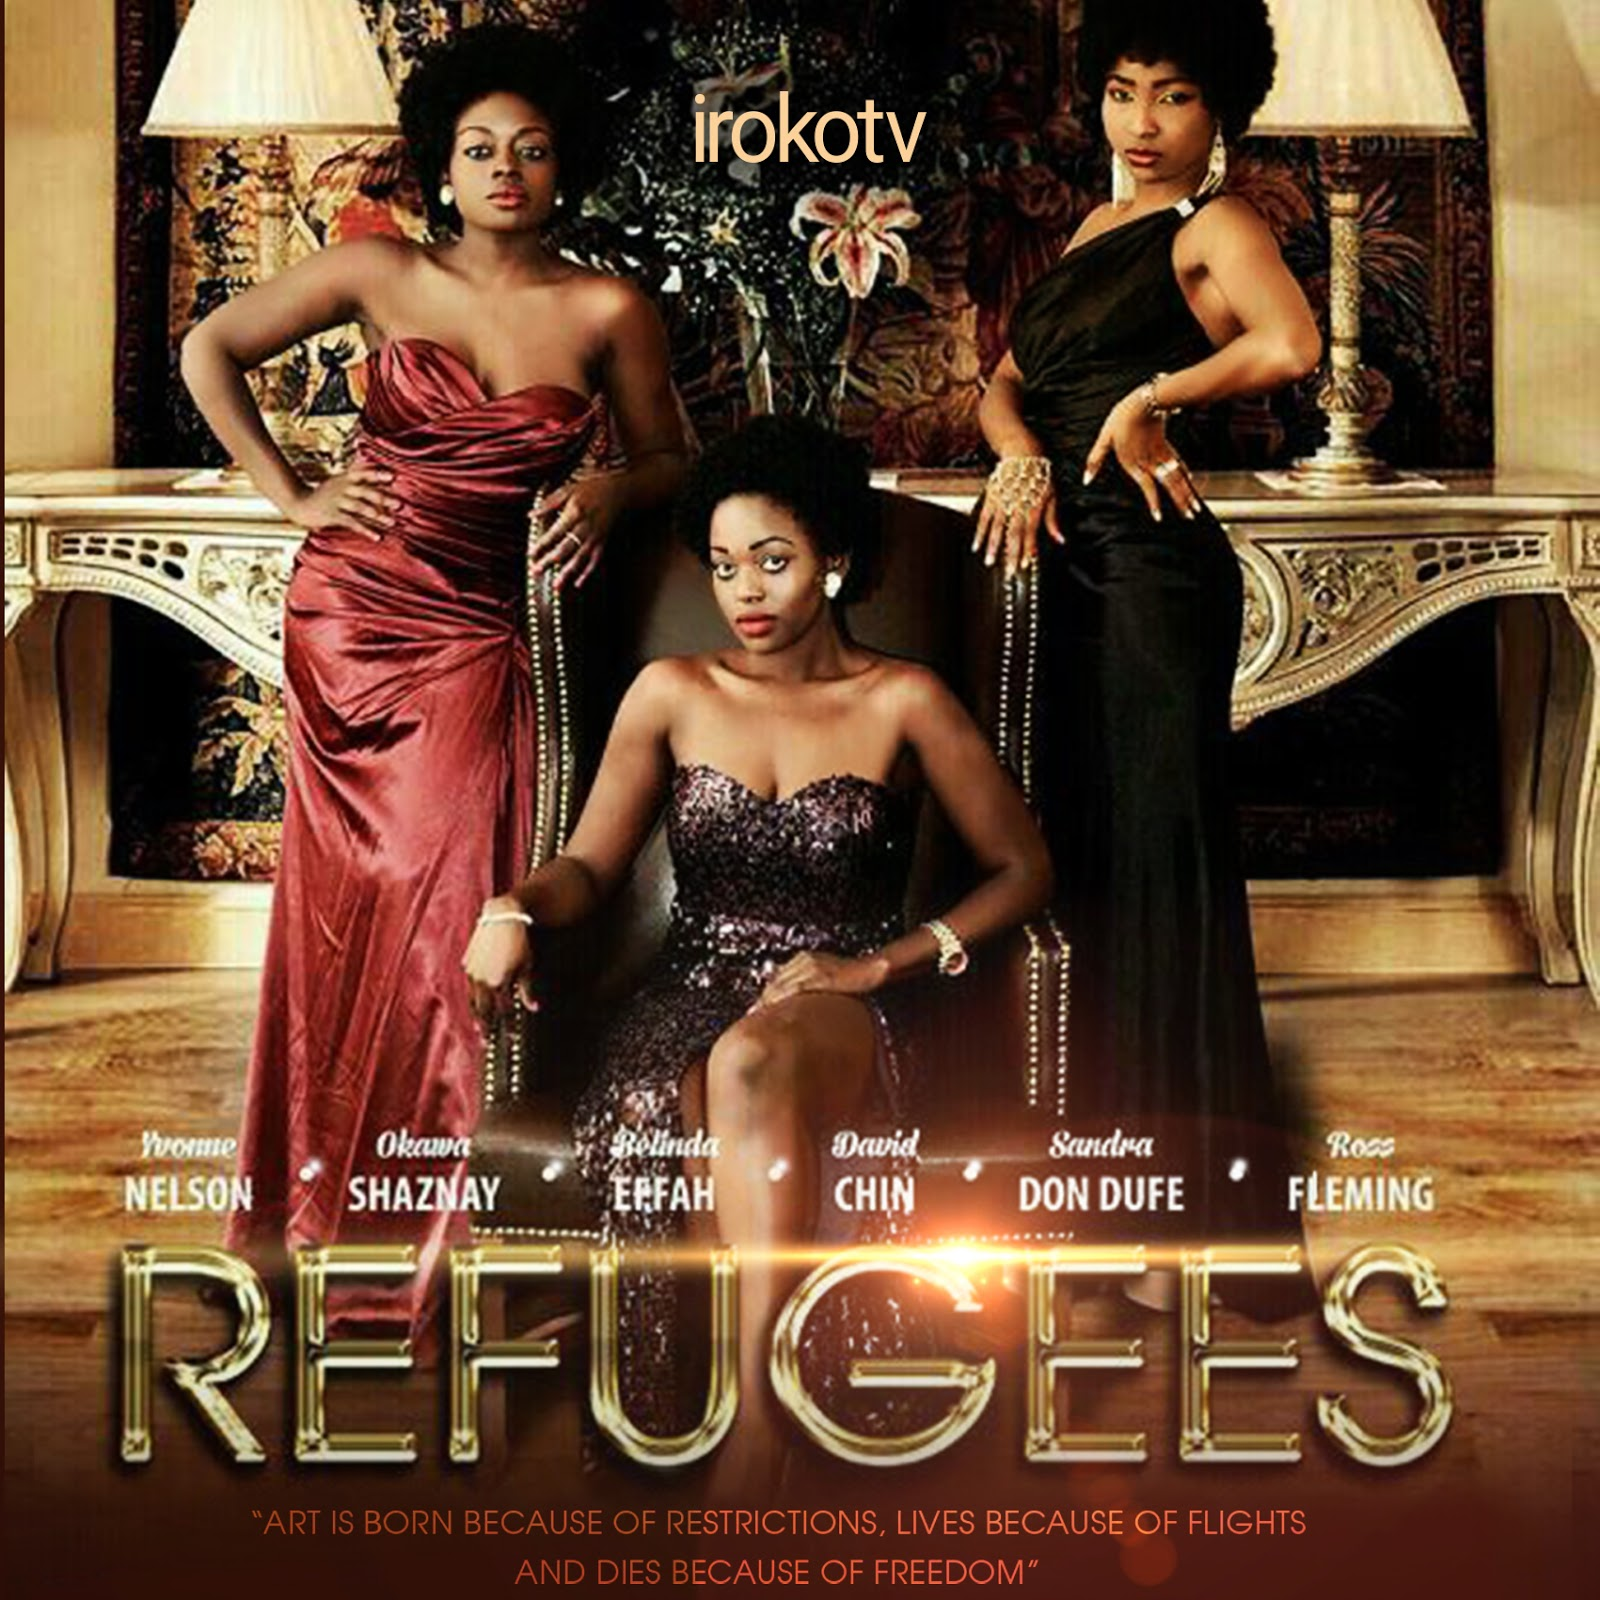 REFUGEES movie, now showing on Iroko Tv - NOLLY MOVIES PLANET